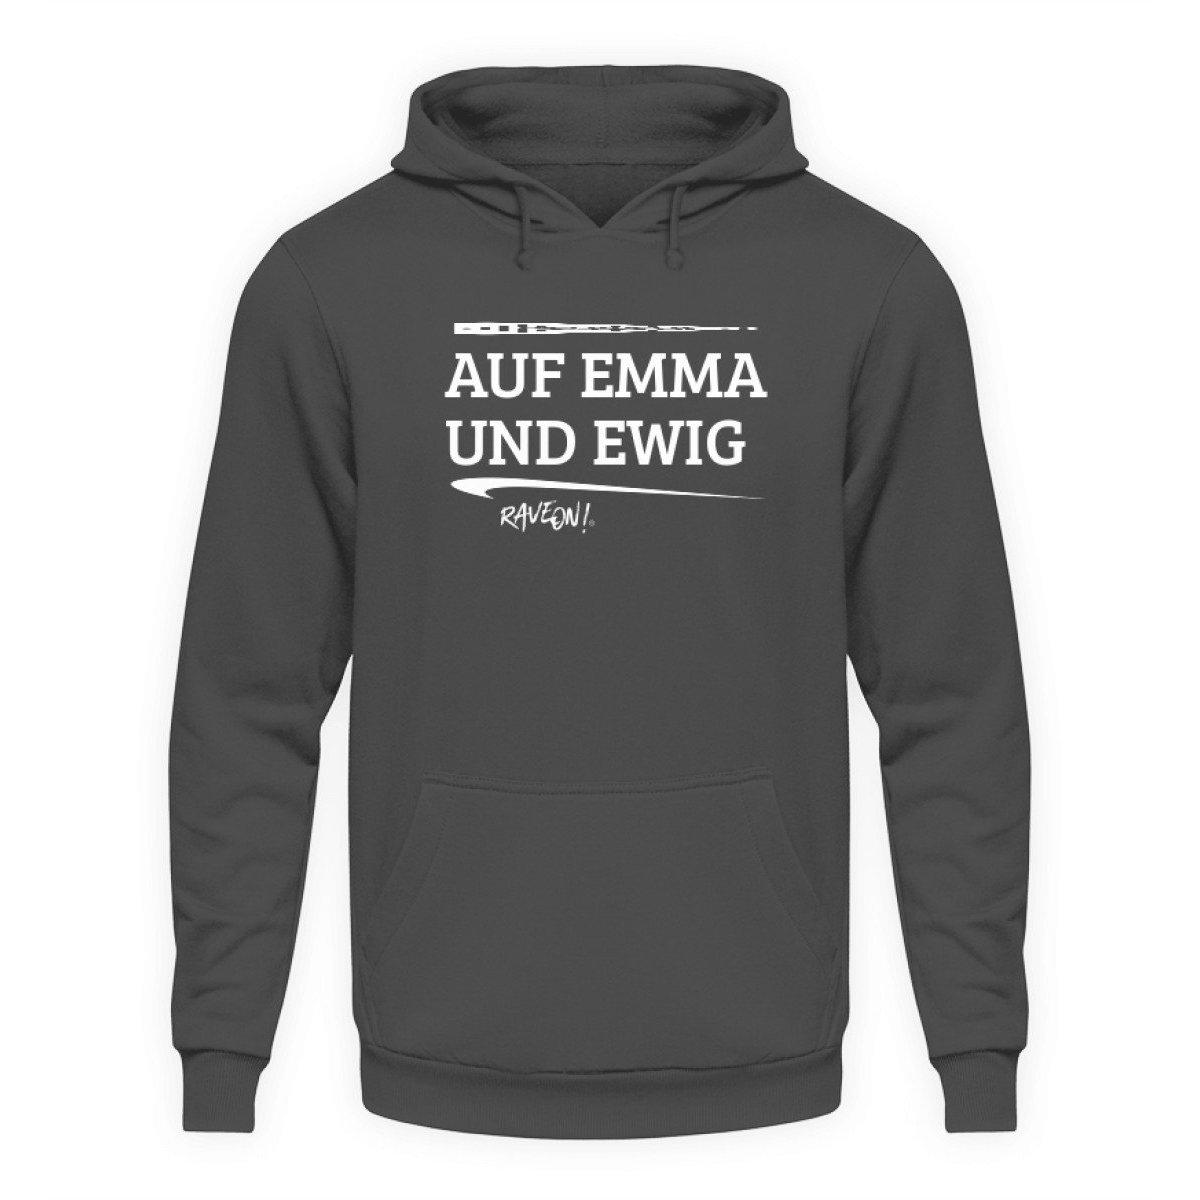 AUF EMMA UND EWIG - Rave On!® - Unisex Kapuzenpullover Hoodie Unisex Hoodie Steel Grey (Solid) / L - Rave On!® der Club & Techno Szene Shop für Coole Junge Mode Streetwear Style & Fashion Outfits + Sexy Festival 420 Stuff